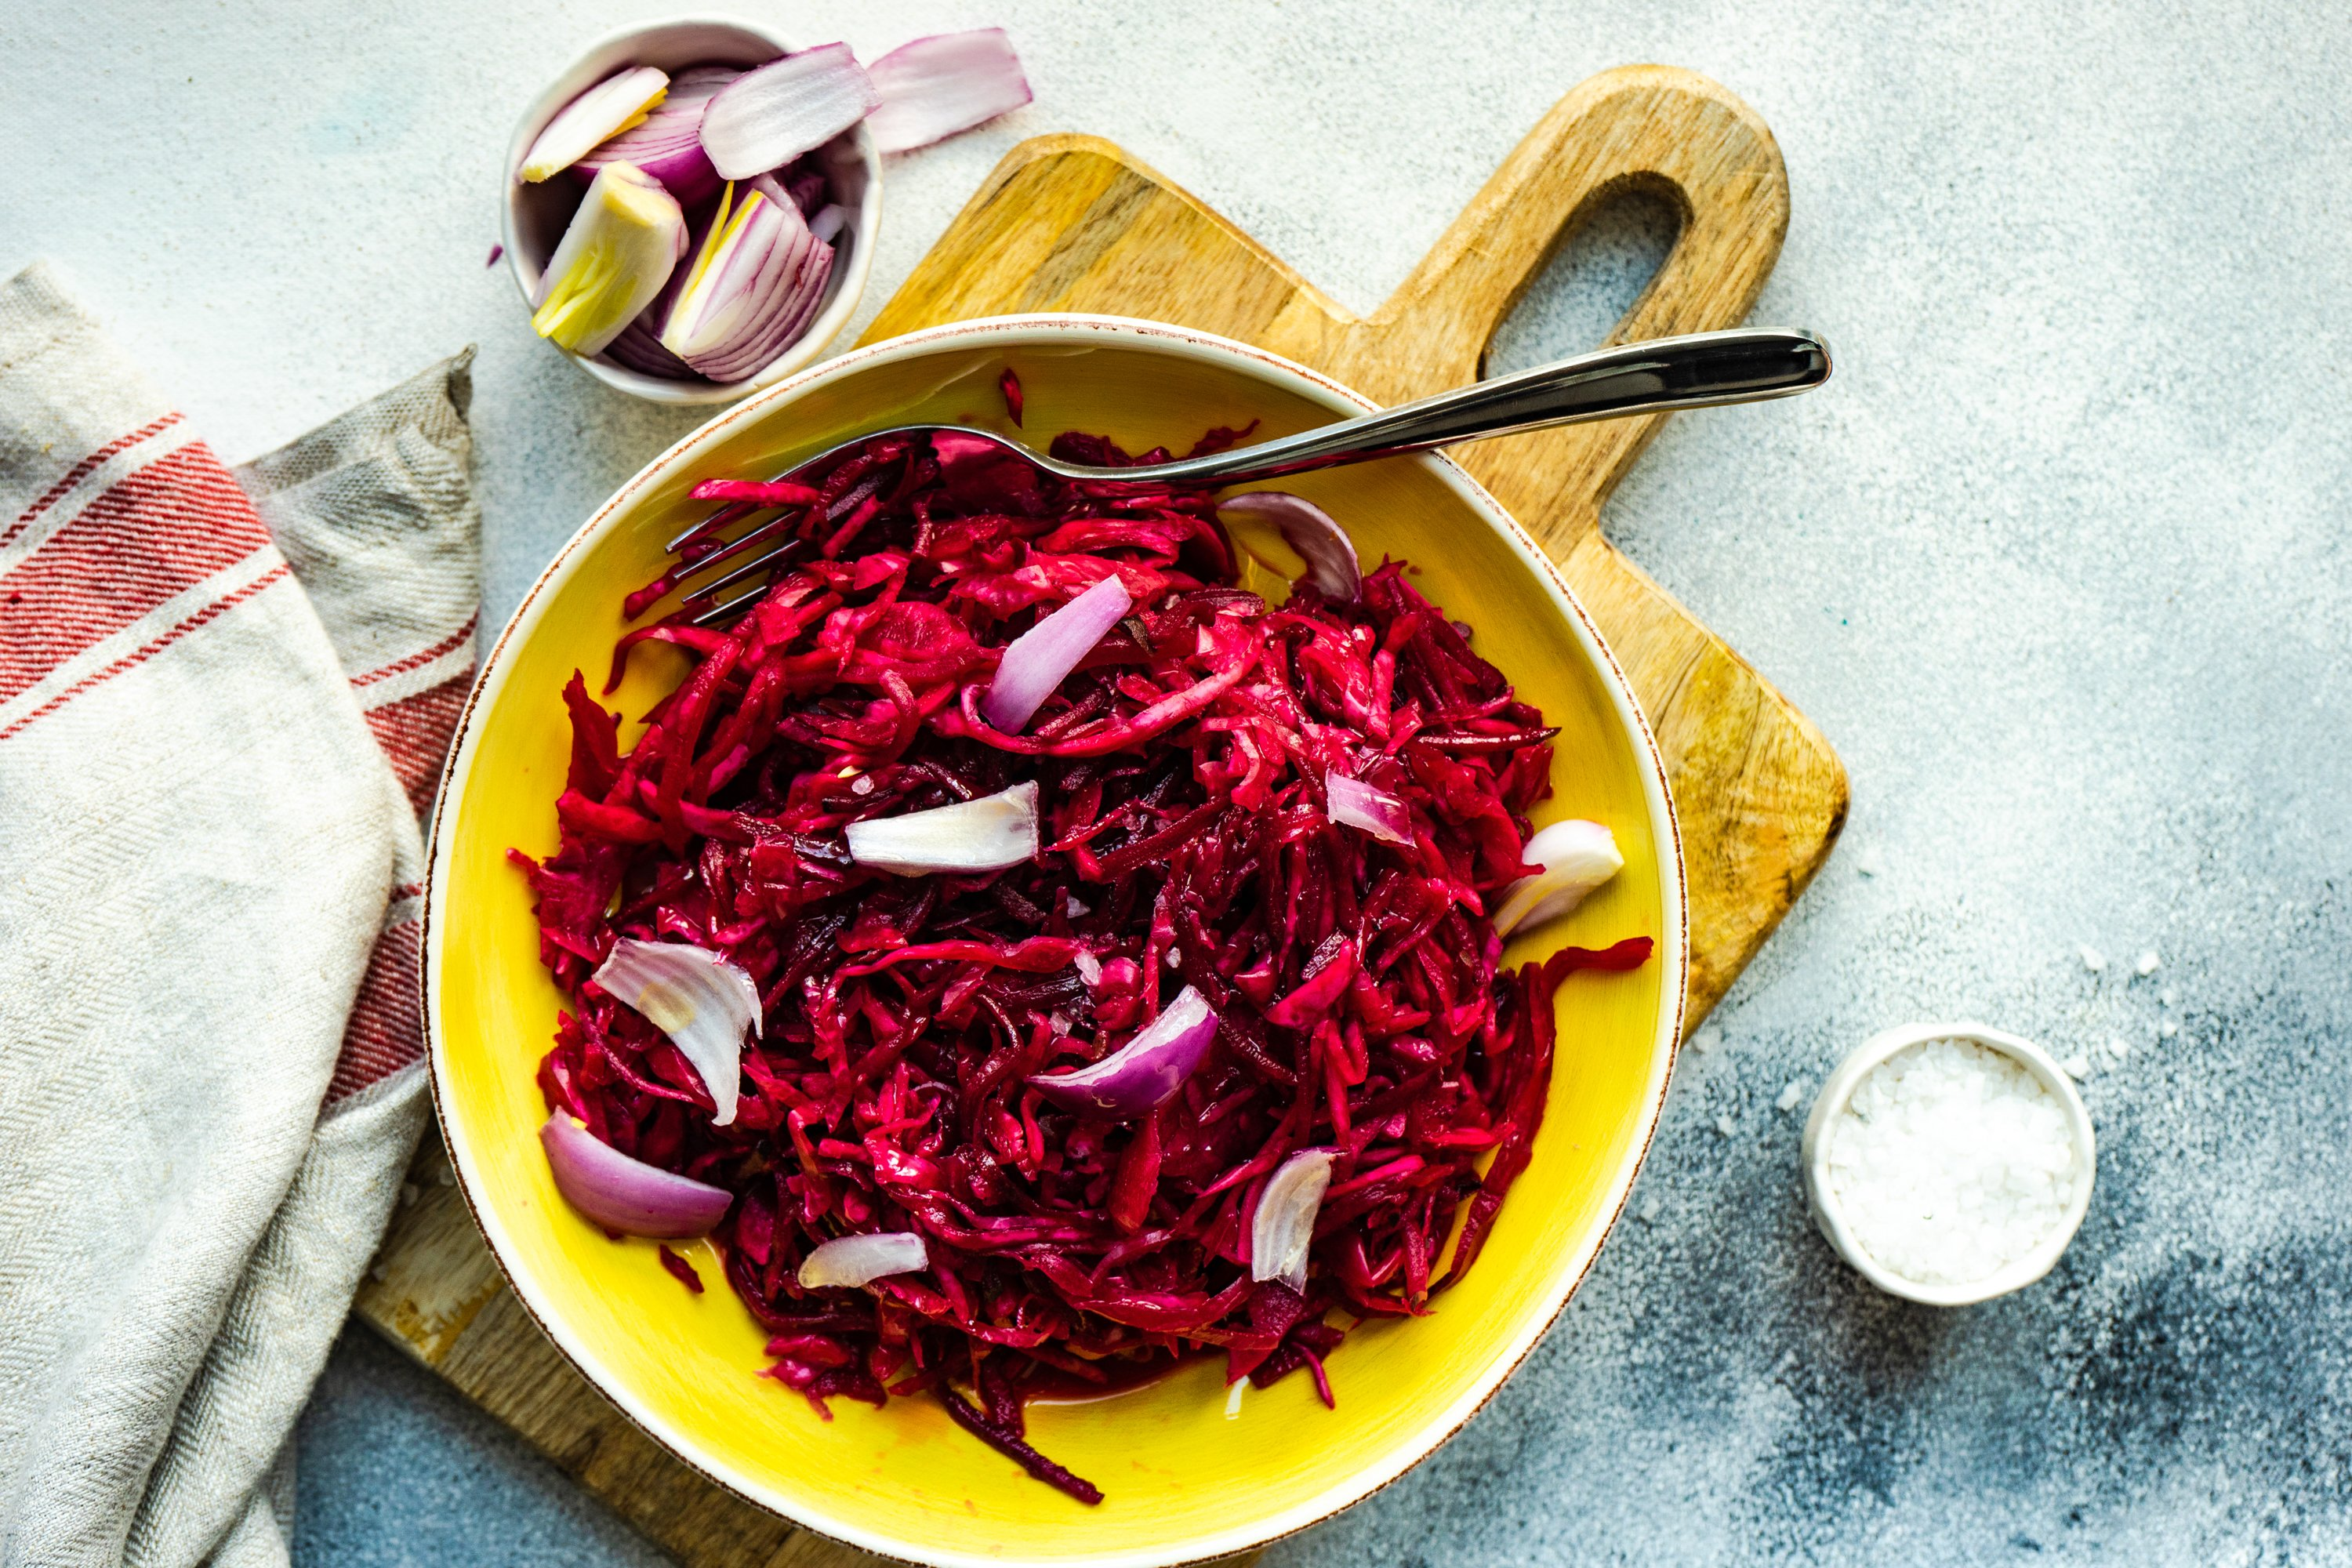 Homemade fermented food with cabbage and beetroot salad example image 1